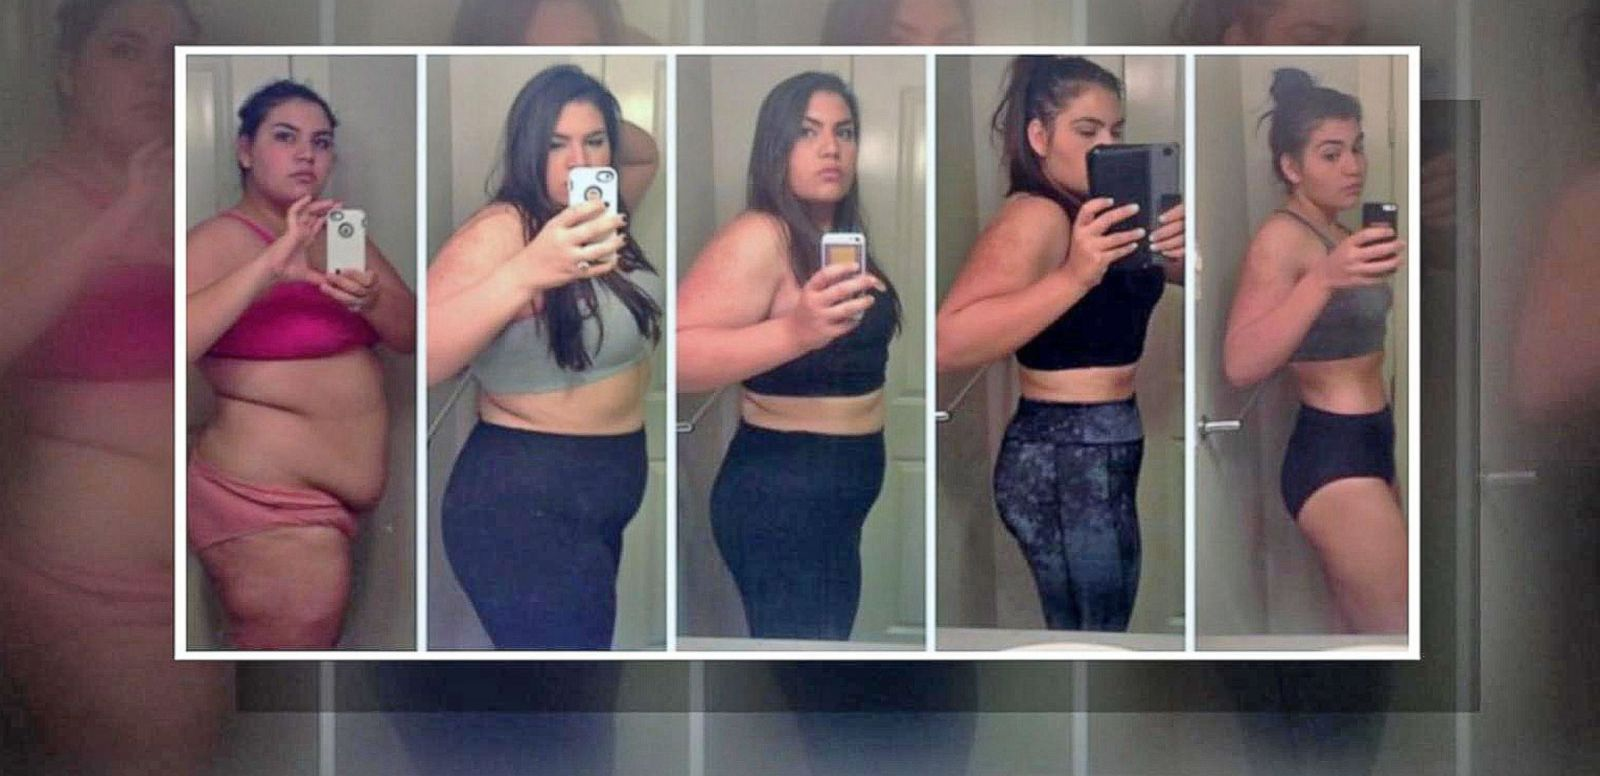 VIDEO: Teacher Reveals Extreme Weight Loss on Instagram